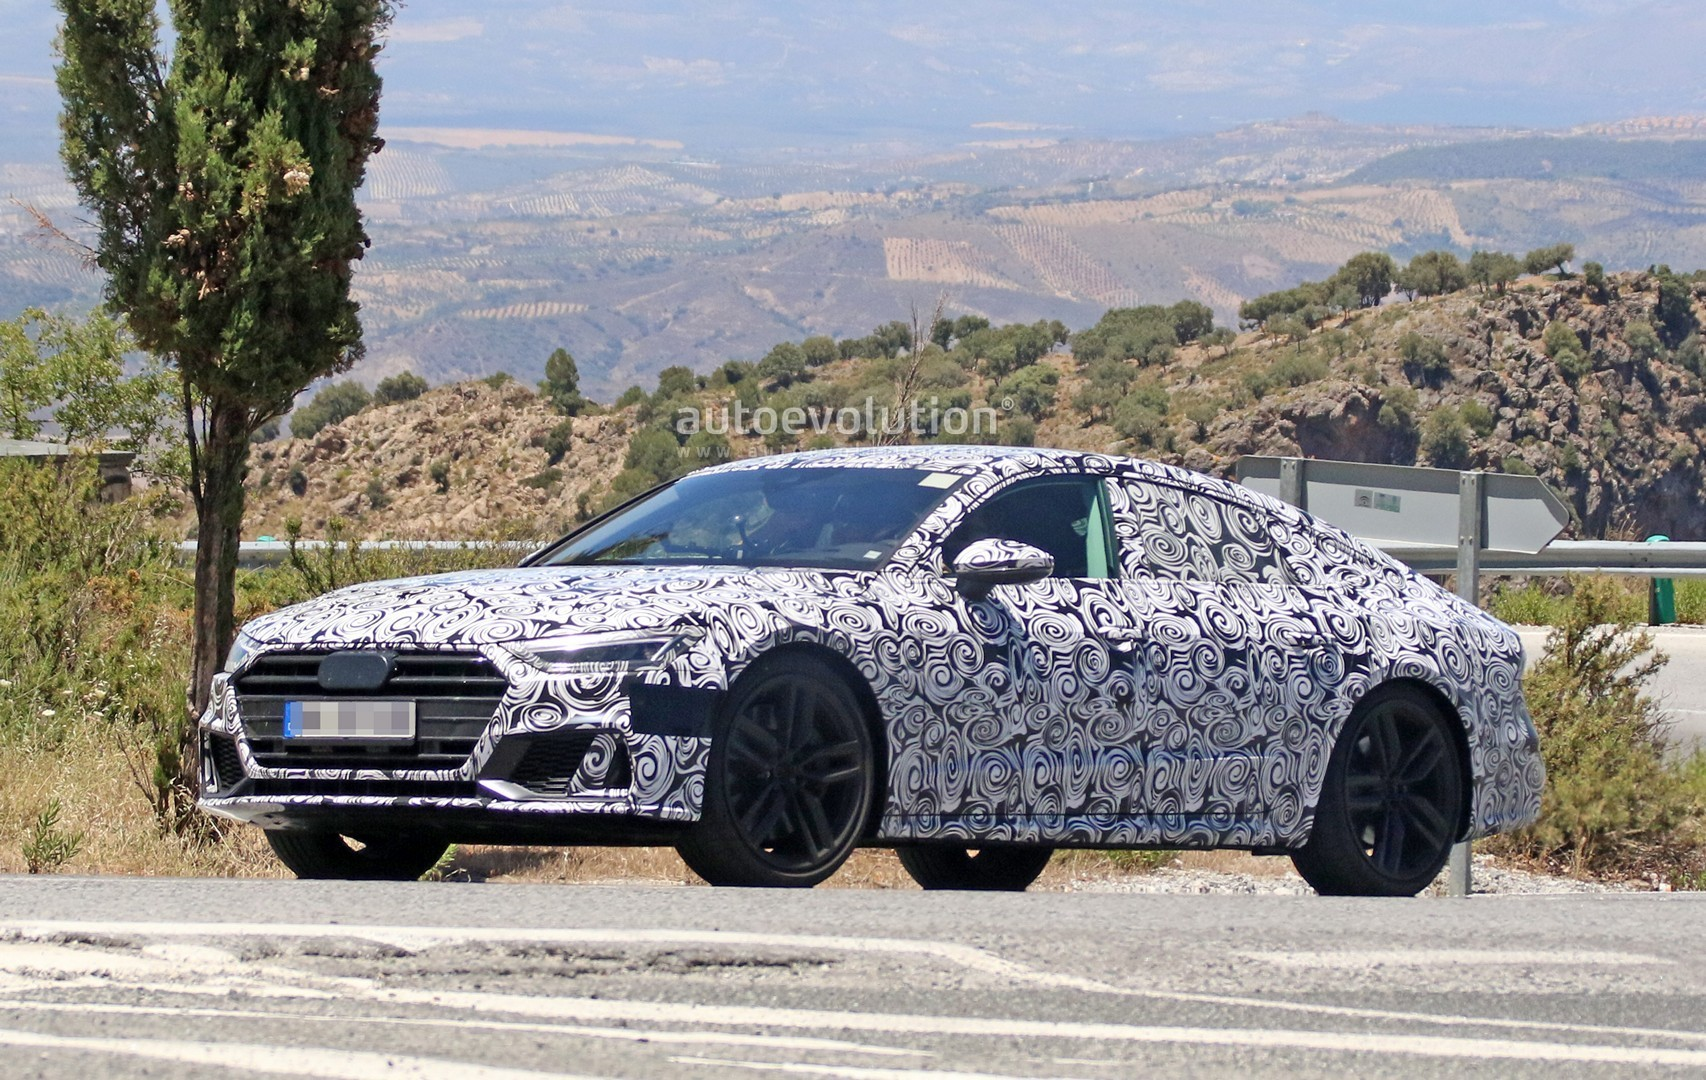 2017 - [Audi] A7 Sportback II - Page 4 2019-audi-s7-spied-in-detail-looks-ready-to-downsize-to-29-tfsi_4